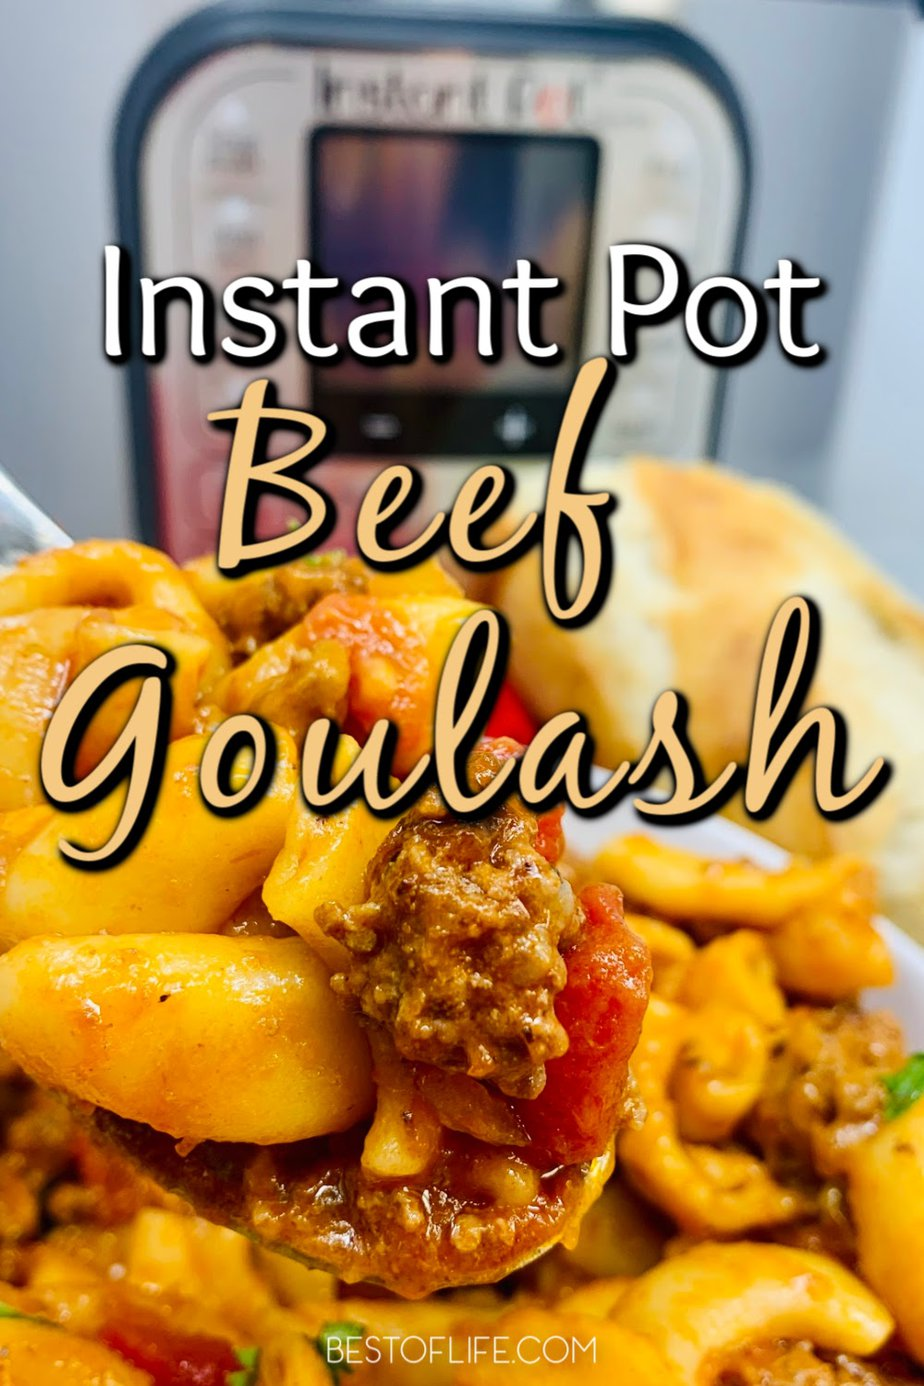 Making a pressure cooker beef goulash recipe is an easy way to enjoy a family dinner that is full of flavor and requires minimal meal prep time. Instant Pot Beef Recipe | Instant Pot Hamburger Meat Recipes | Pressure Cooker Recipes with Beef | Instant Pot Goulash Recipe | Easy Family Dinner Recipes | Instant Pot Dinner Recipes #instantpot #beef